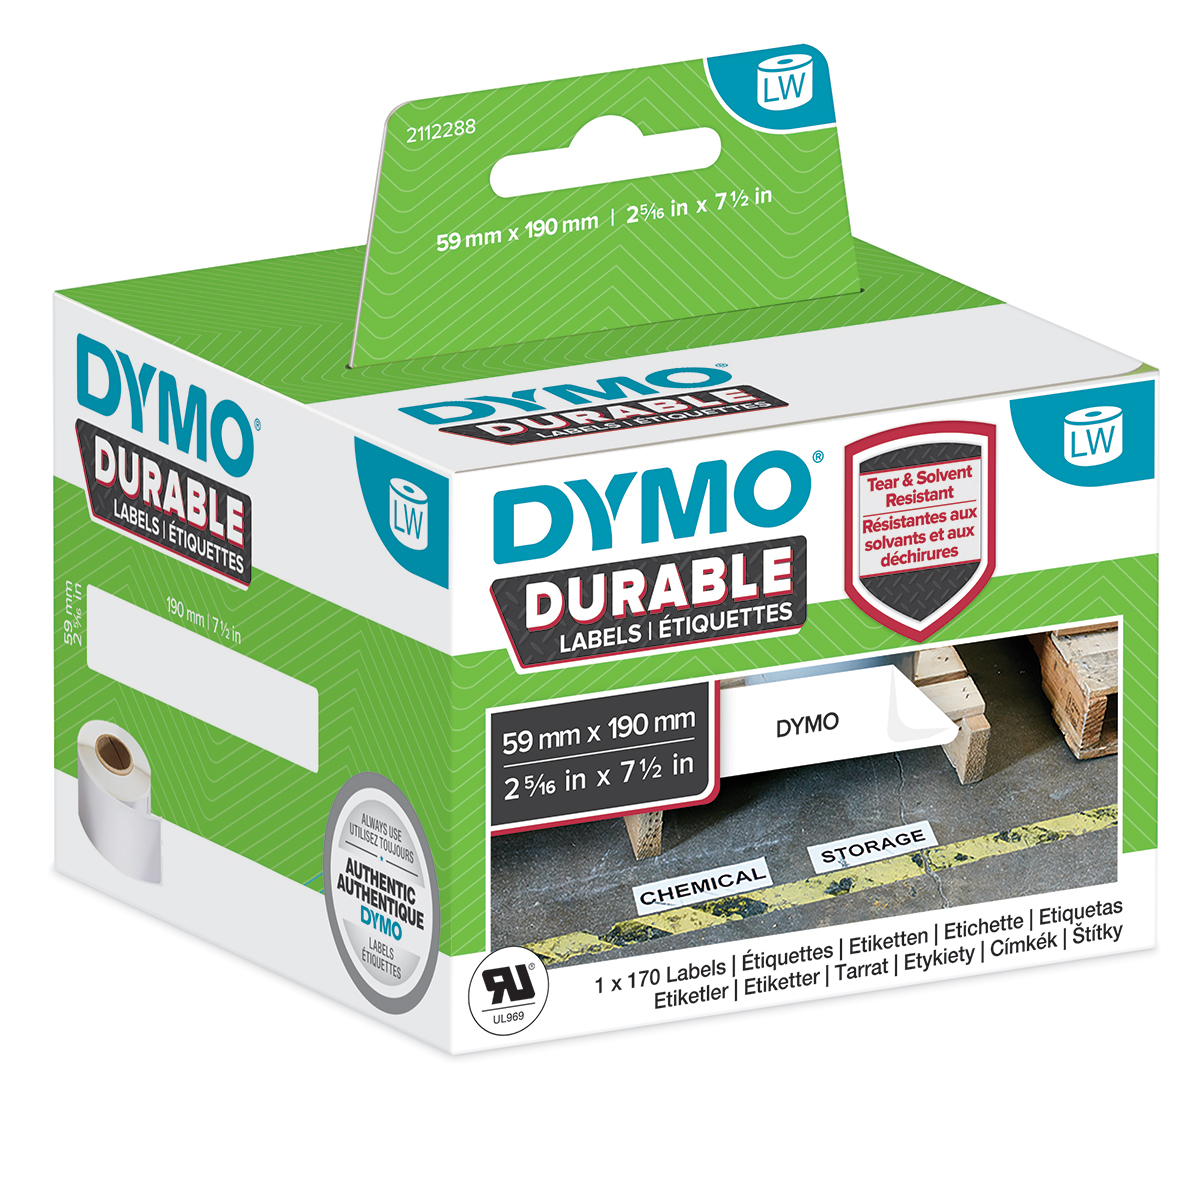 Dymo 2112288 LW Durable Large Shelving label 59mm x 190mm Black on White